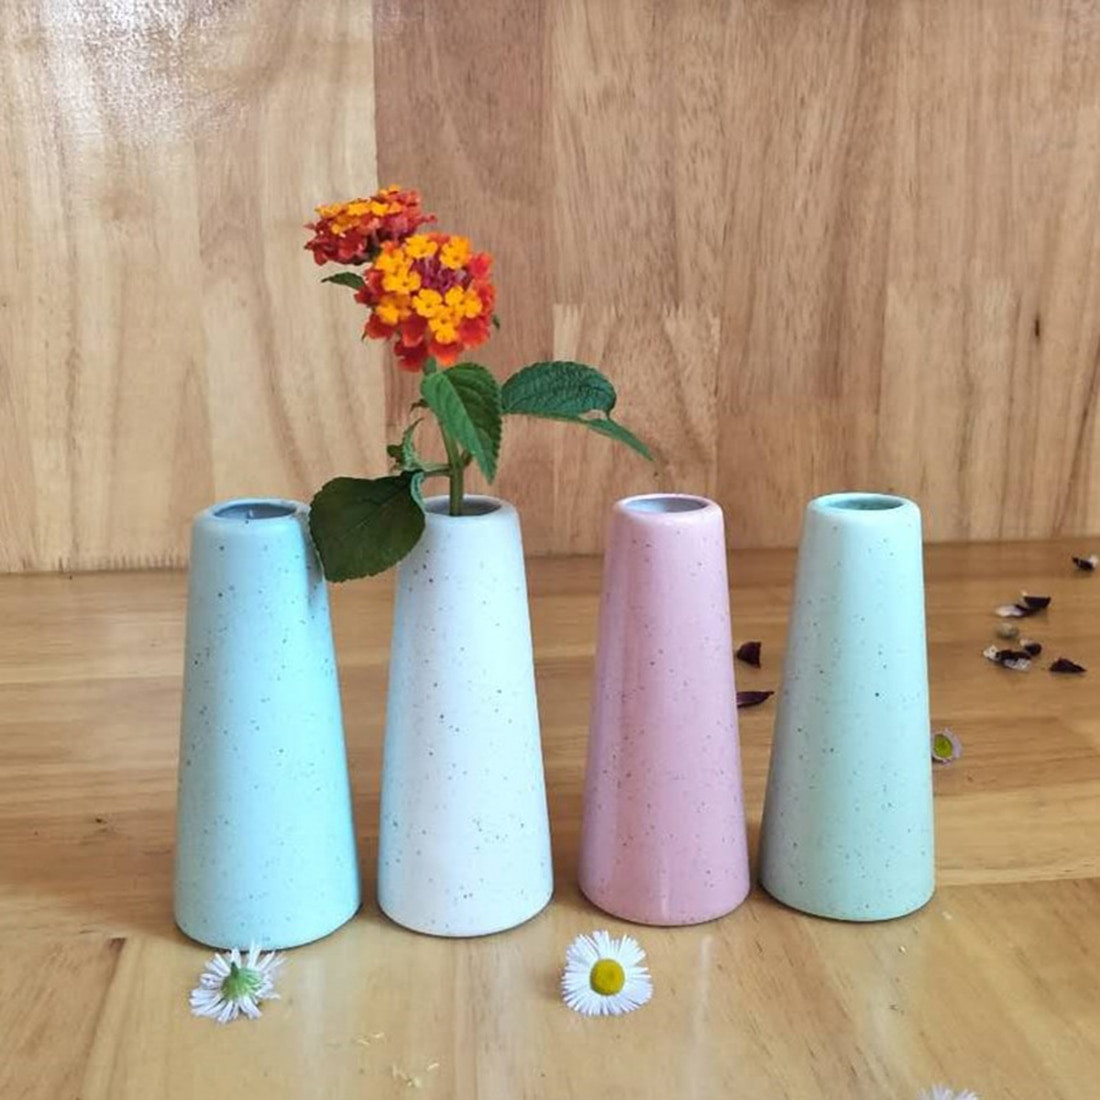 Korean Vases for Sale Of Flower Vases for Homes Mini Ceramic Tabletop Vase for Flowers Home within Flower Vases for Homes Mini Ceramic Tabletop Vase for Flowers Home Room Study Hallway Office Wedding Decor Pink Skyblue White In Vases From Home Garden On